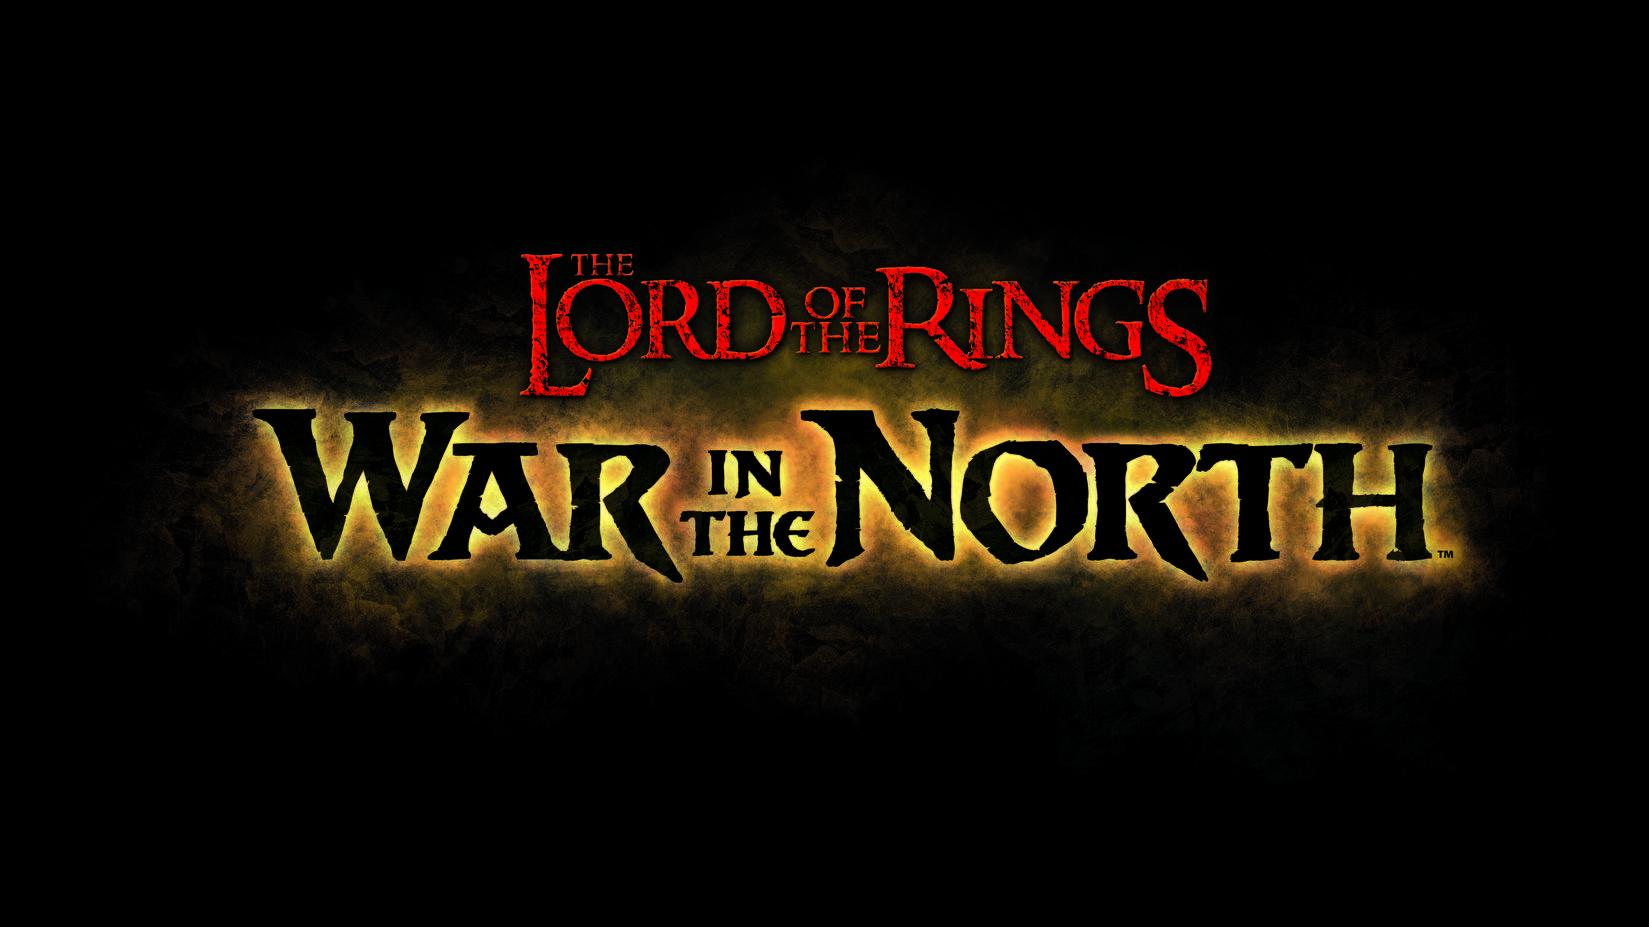 The Lord of the Rings War in the North - Vignette